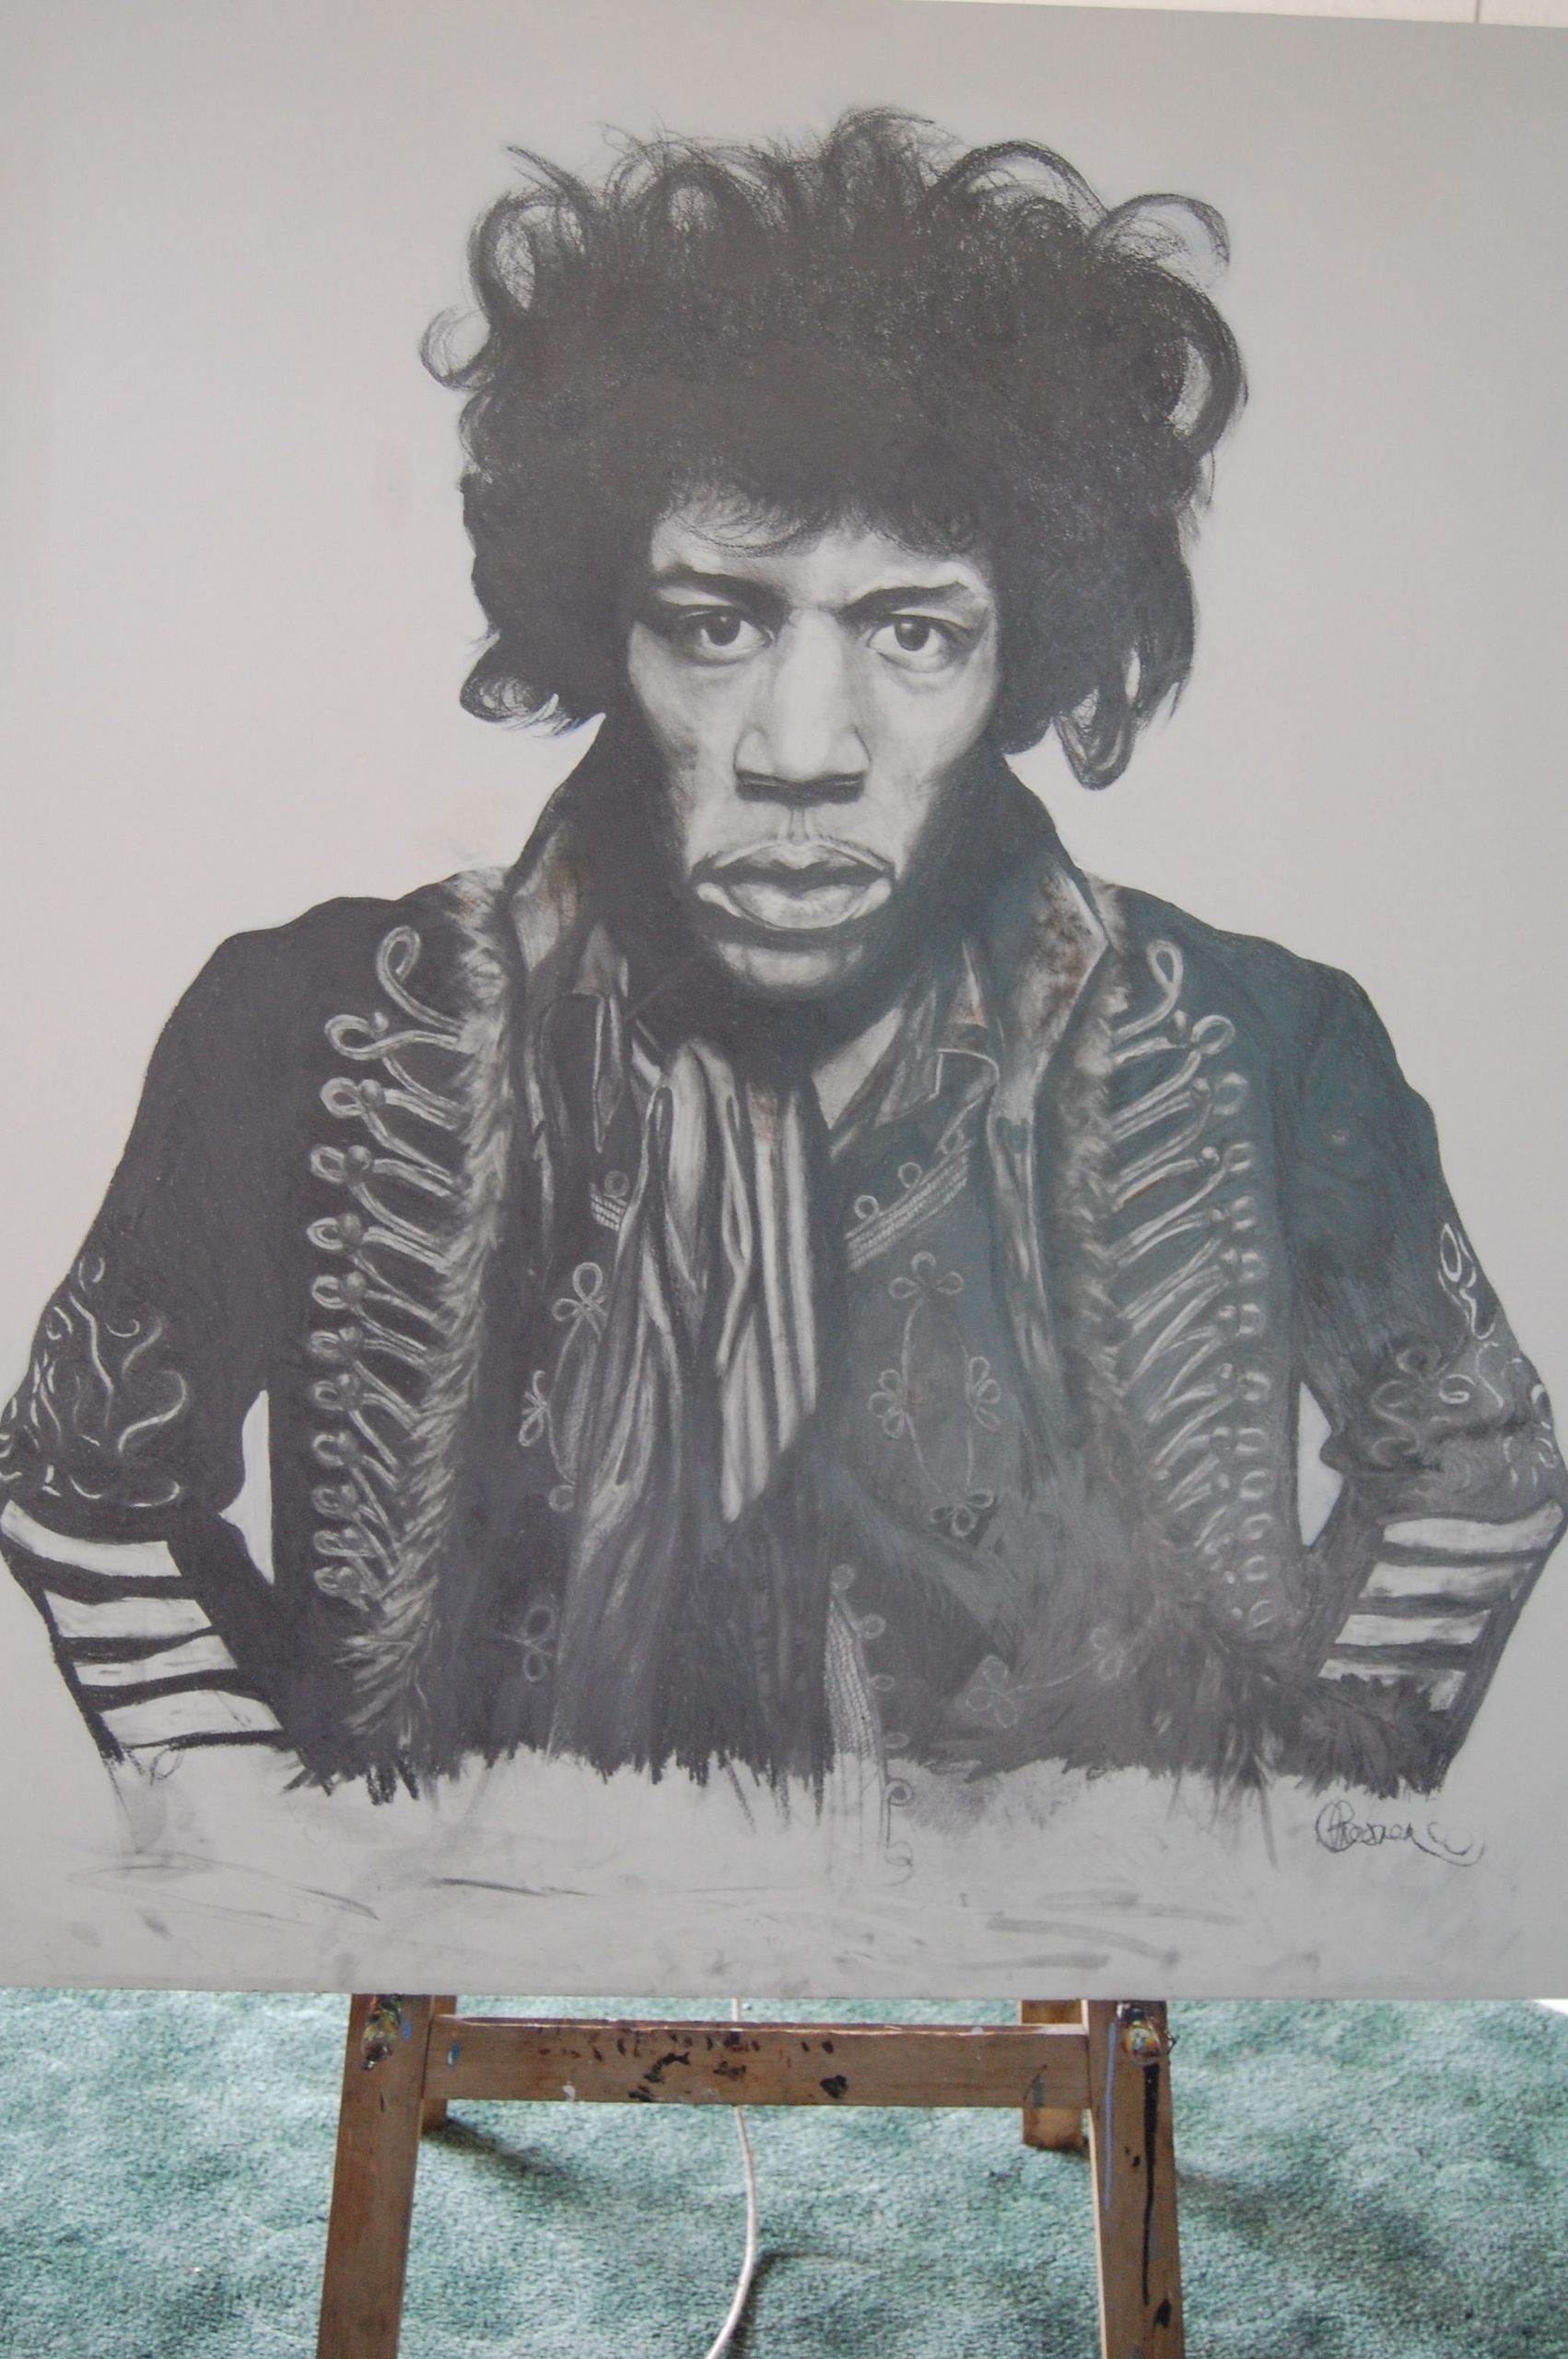 Jimi Hendrix Images Large Illustration FOR SALE HD Wallpaper And Background Photos